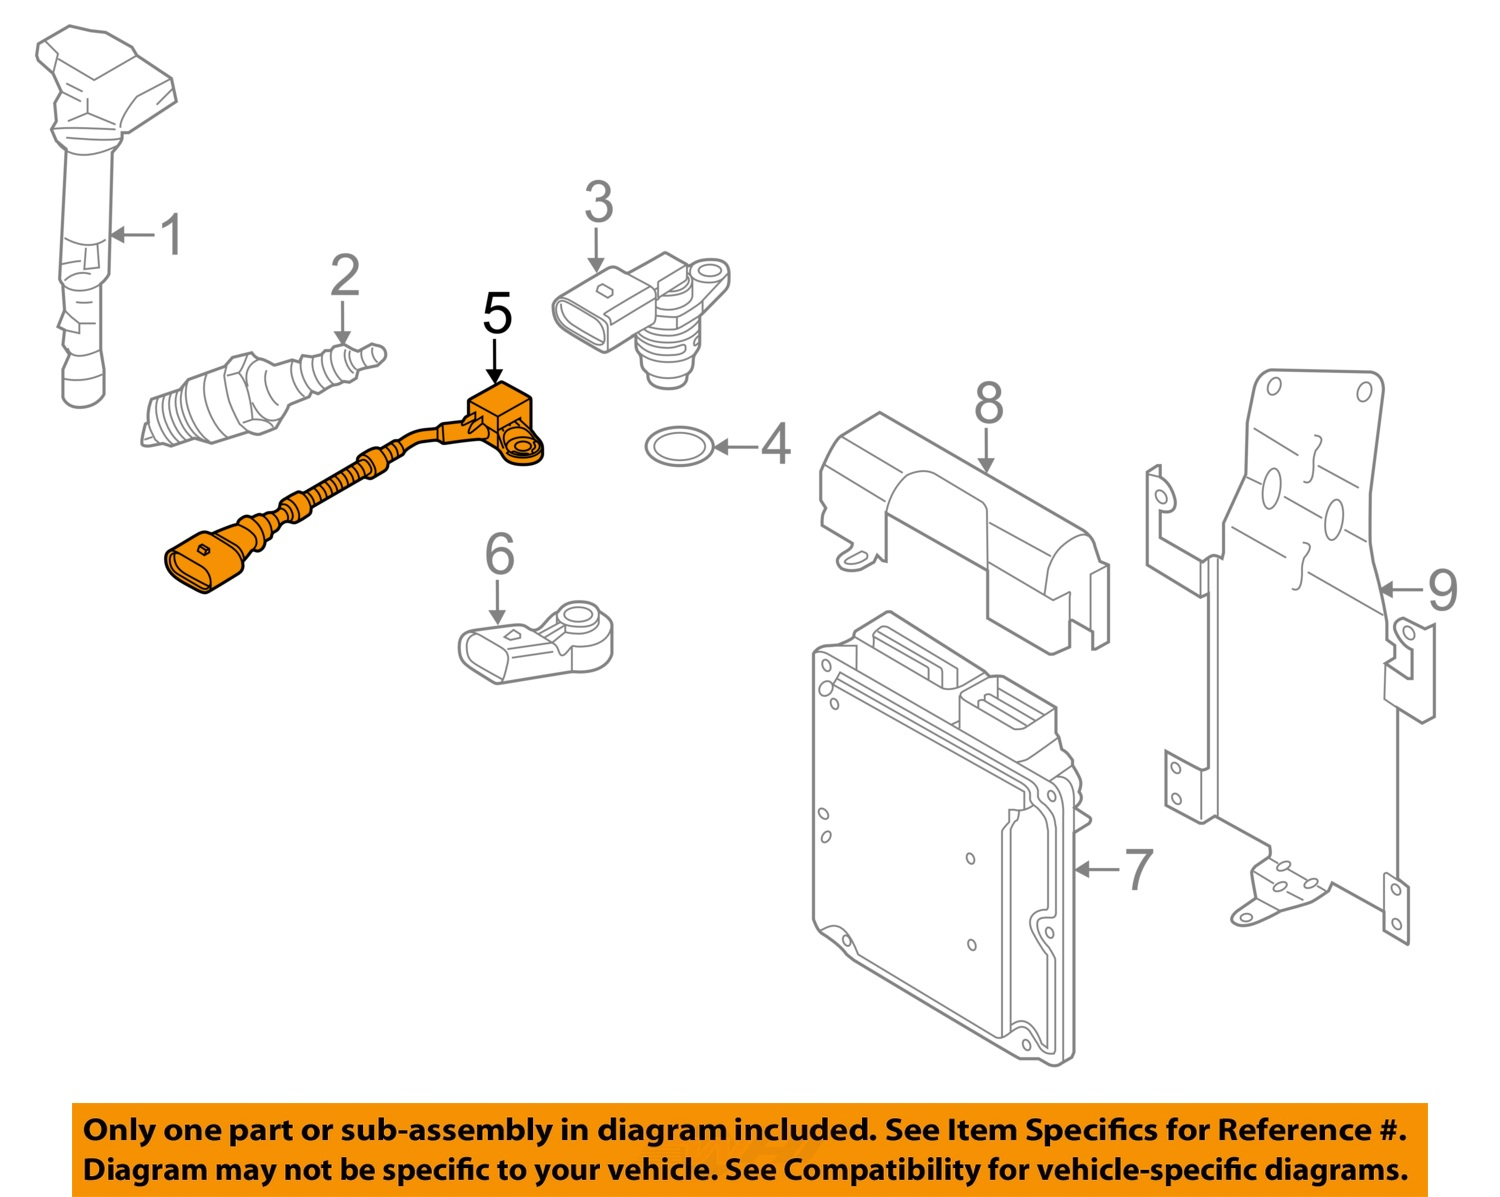 vw touareg 2005 wiring diagram 2 wire thermostat heat only headlight harness diagrams